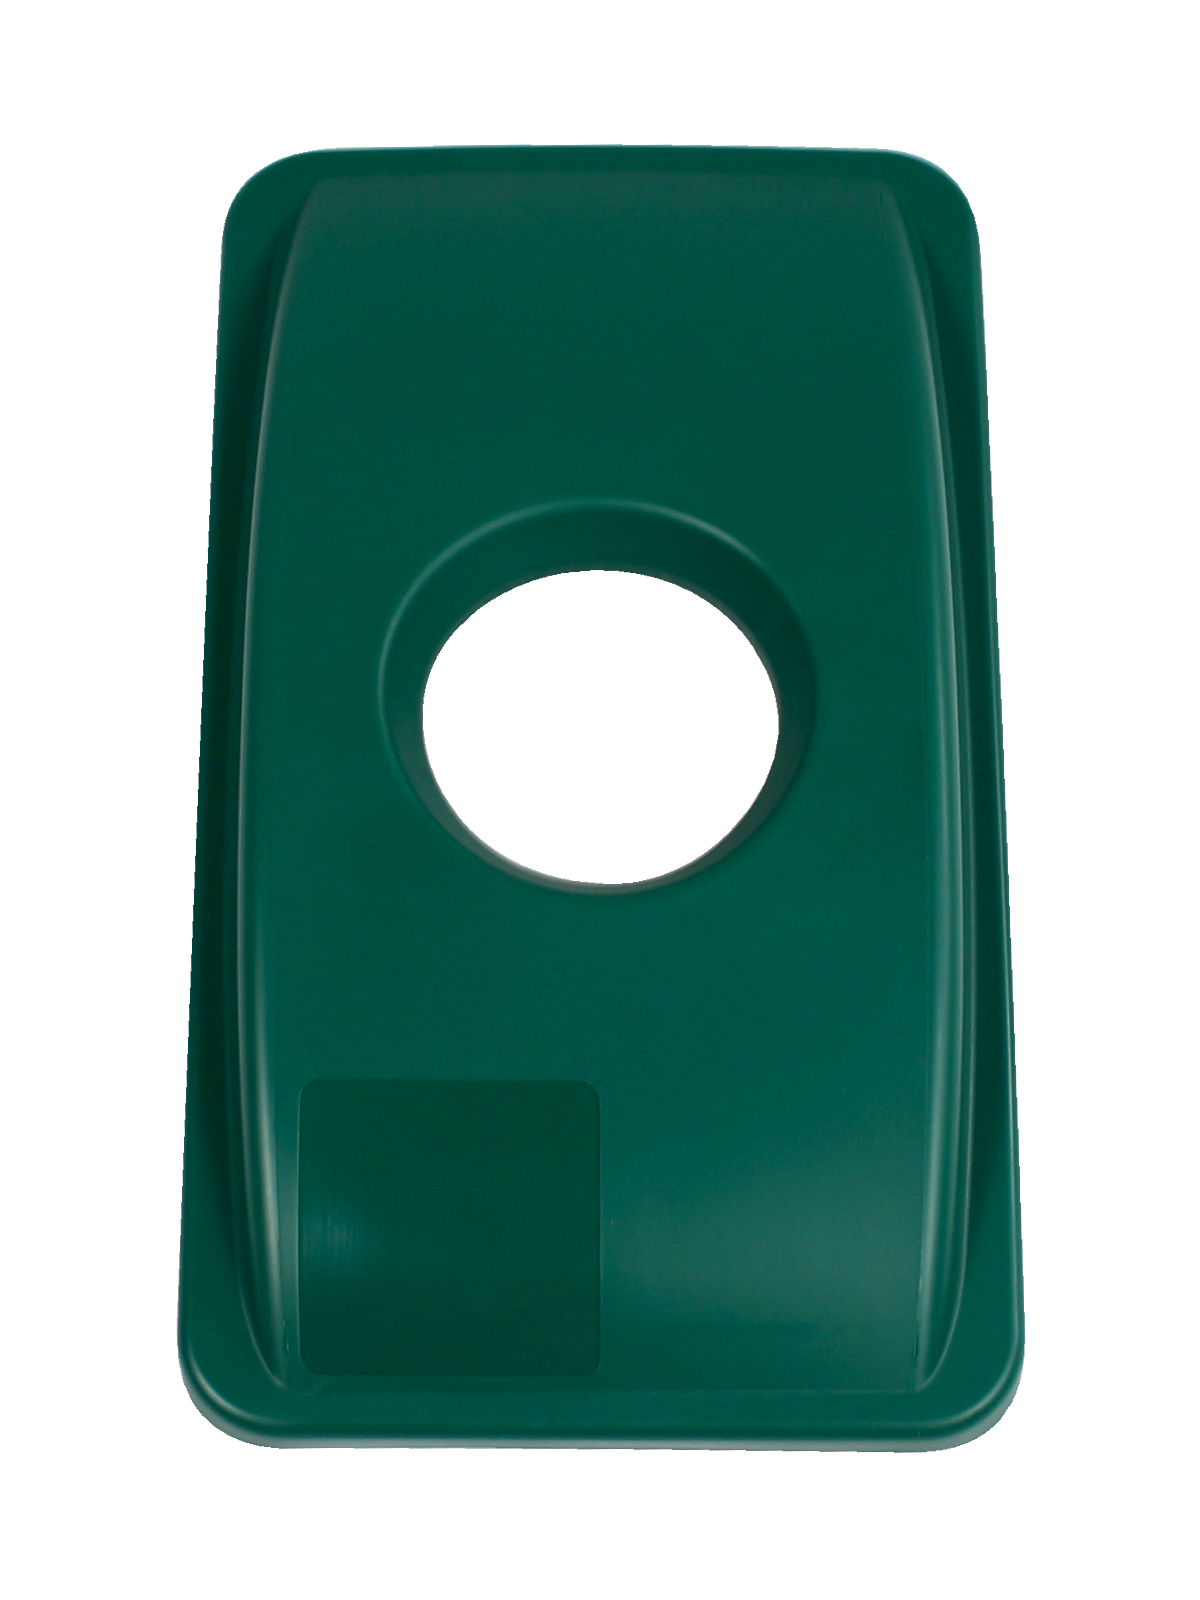 WASTE WATCHER - Lid - Circle - Dark Green